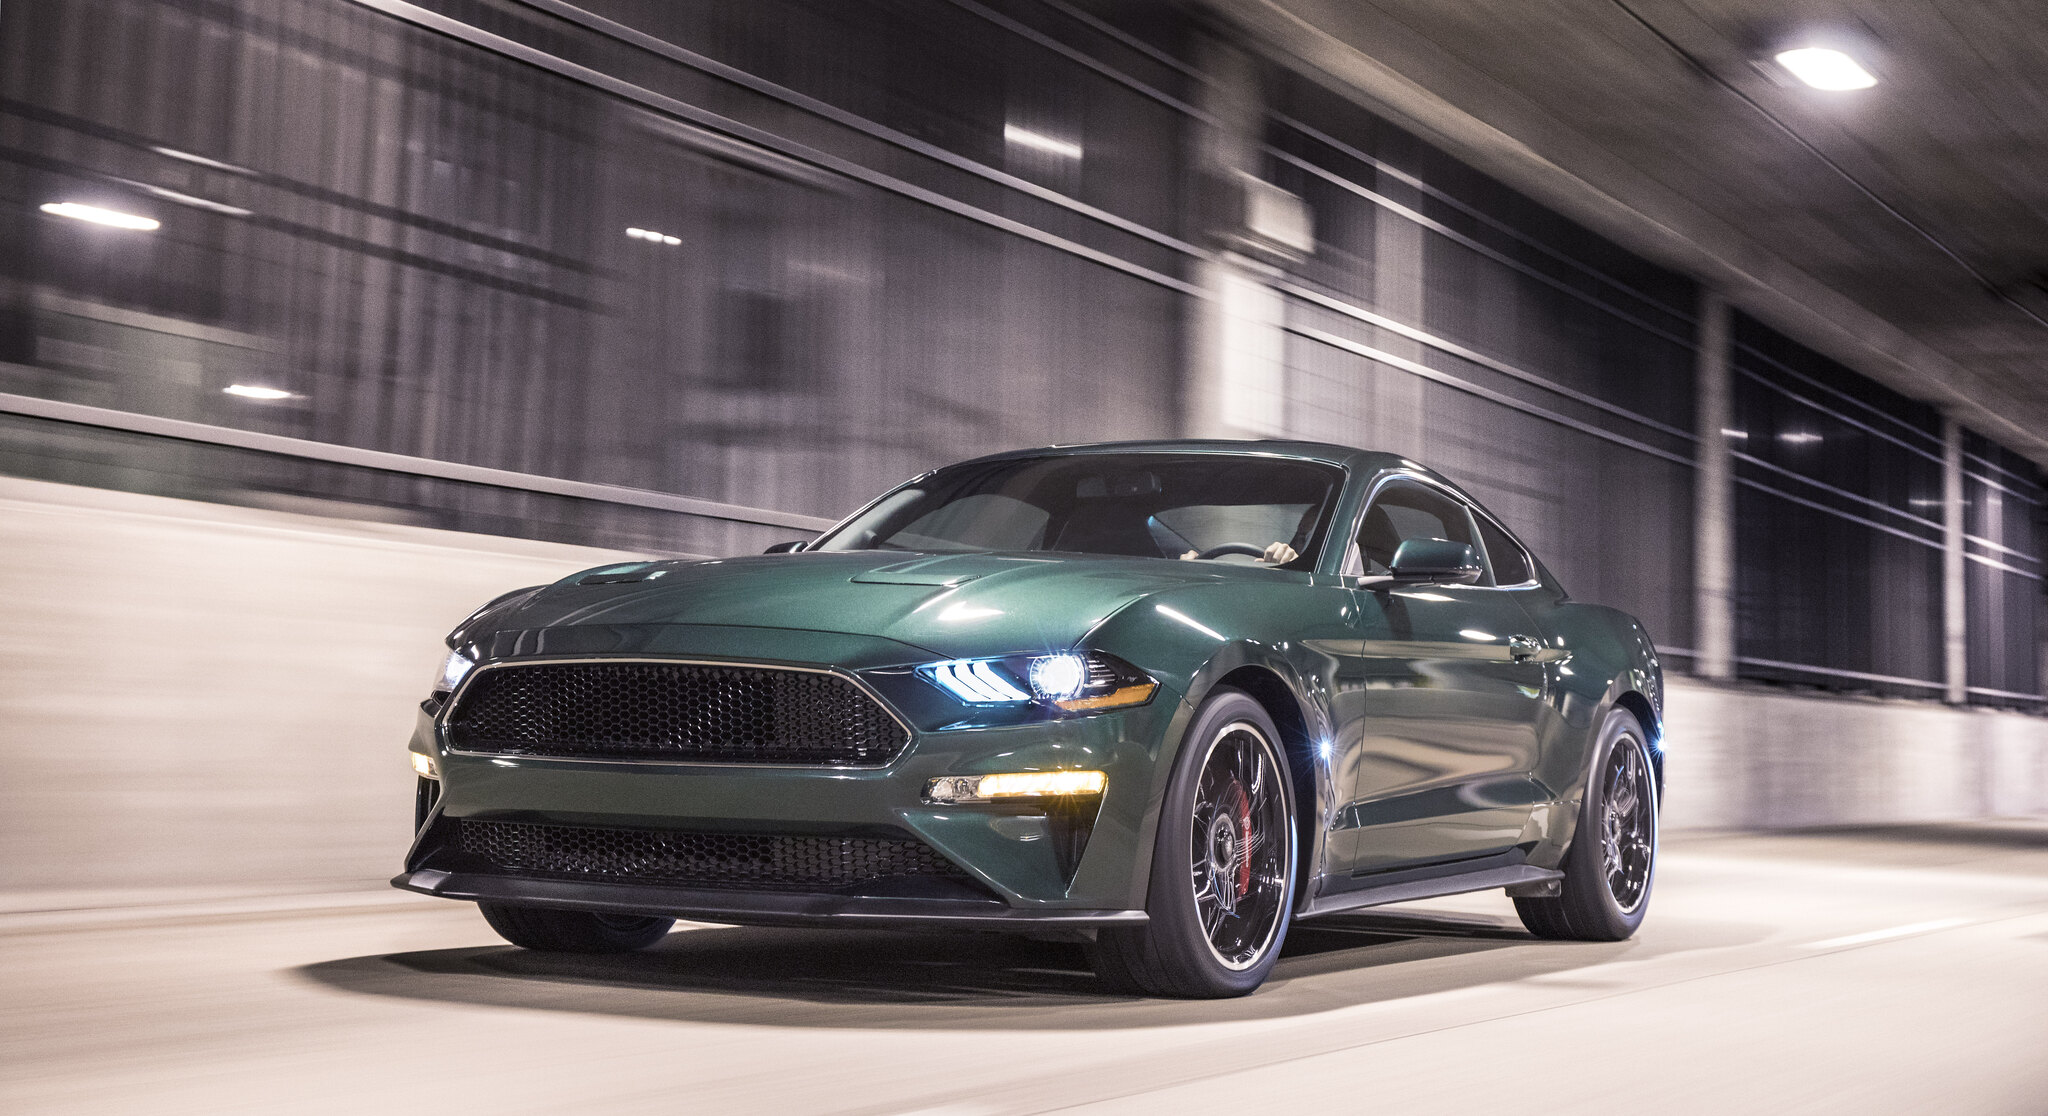 50th anniversary Mustang Bullitt revives silver screen legend with new levels of power